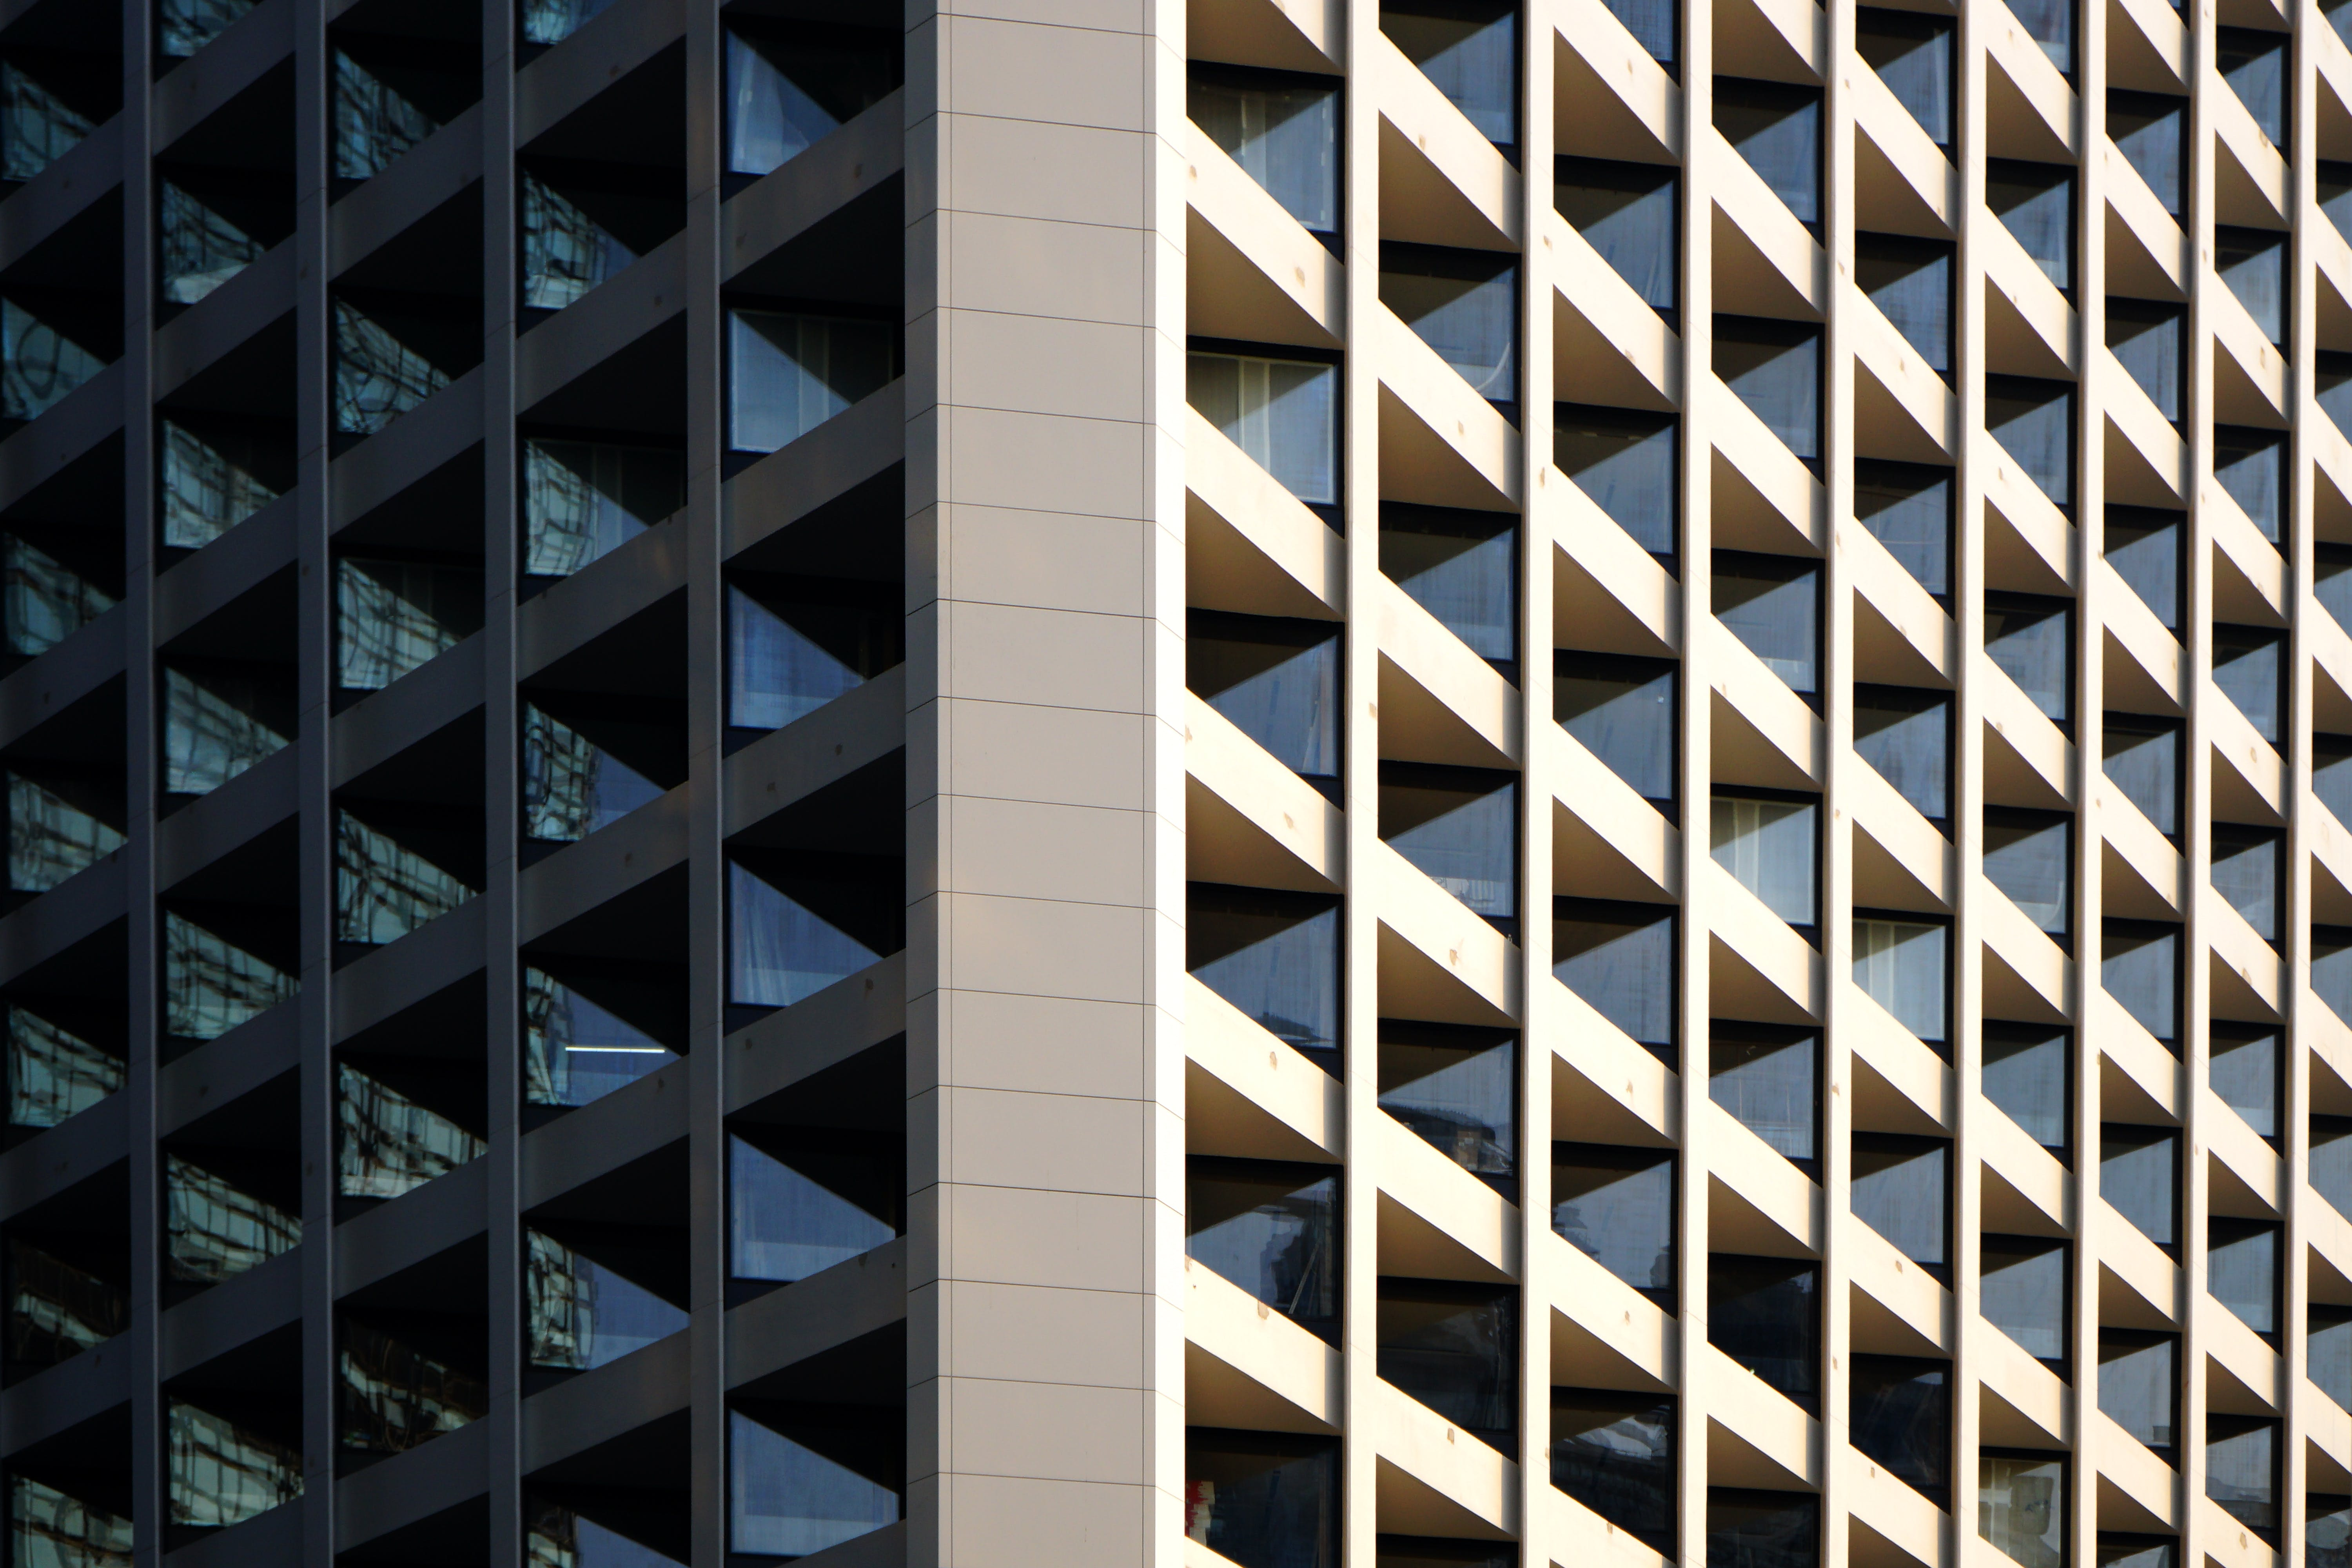 building, commercial, geometric pattern